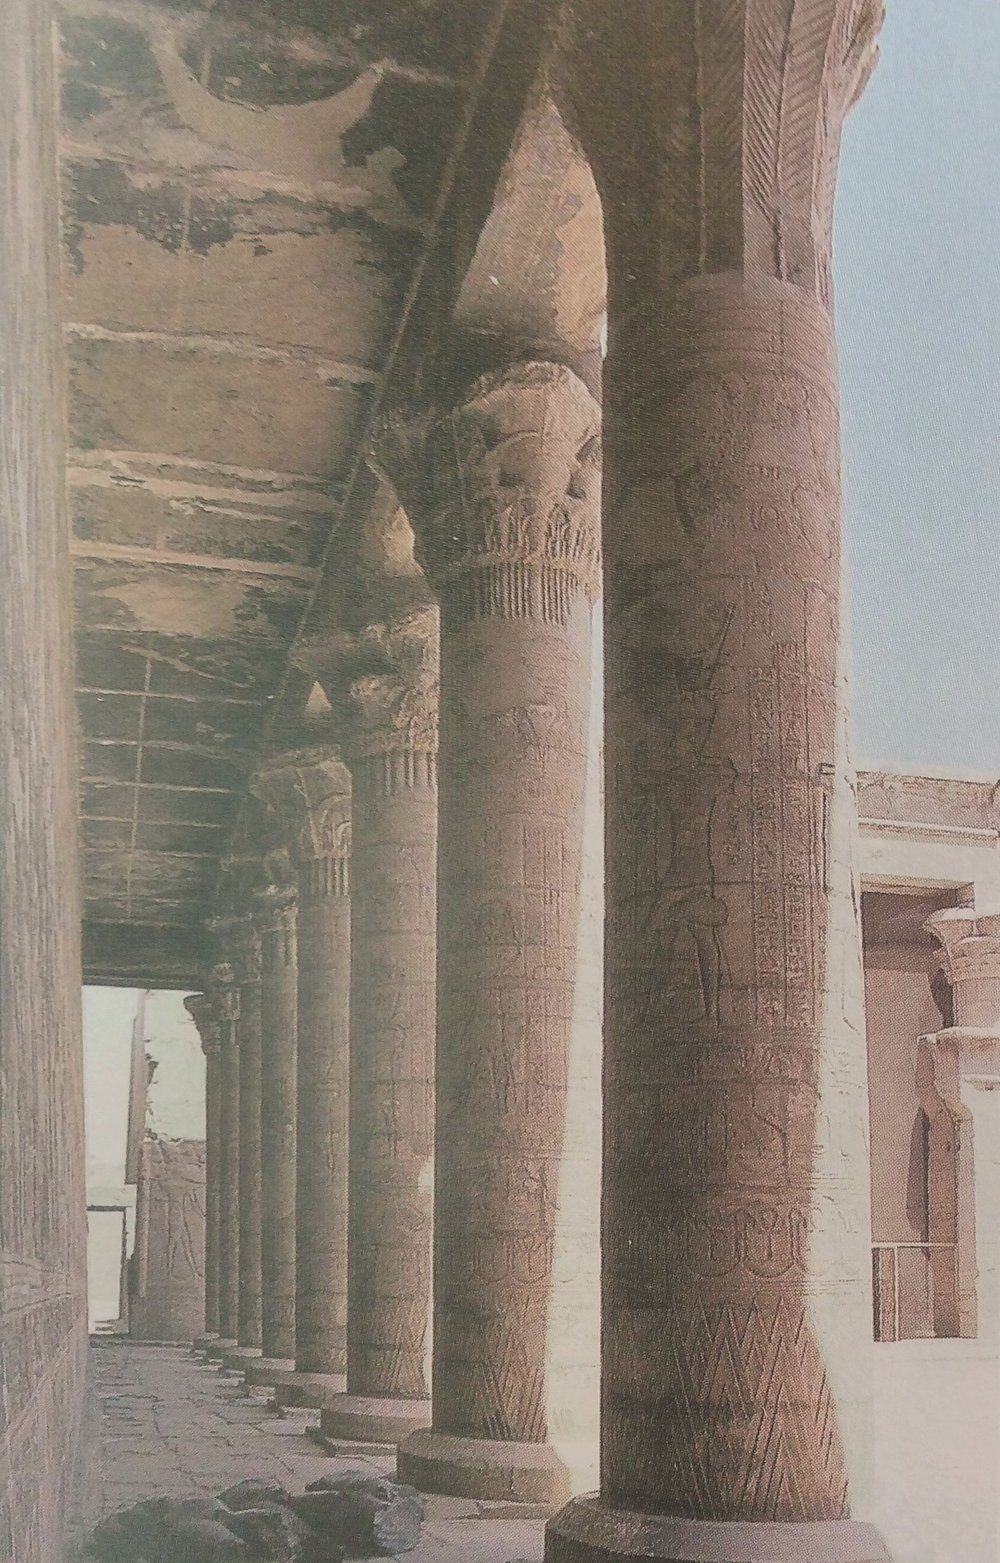 Research for World Building, Figure 3: Colonnade in the Horus temple at Edfu [5]